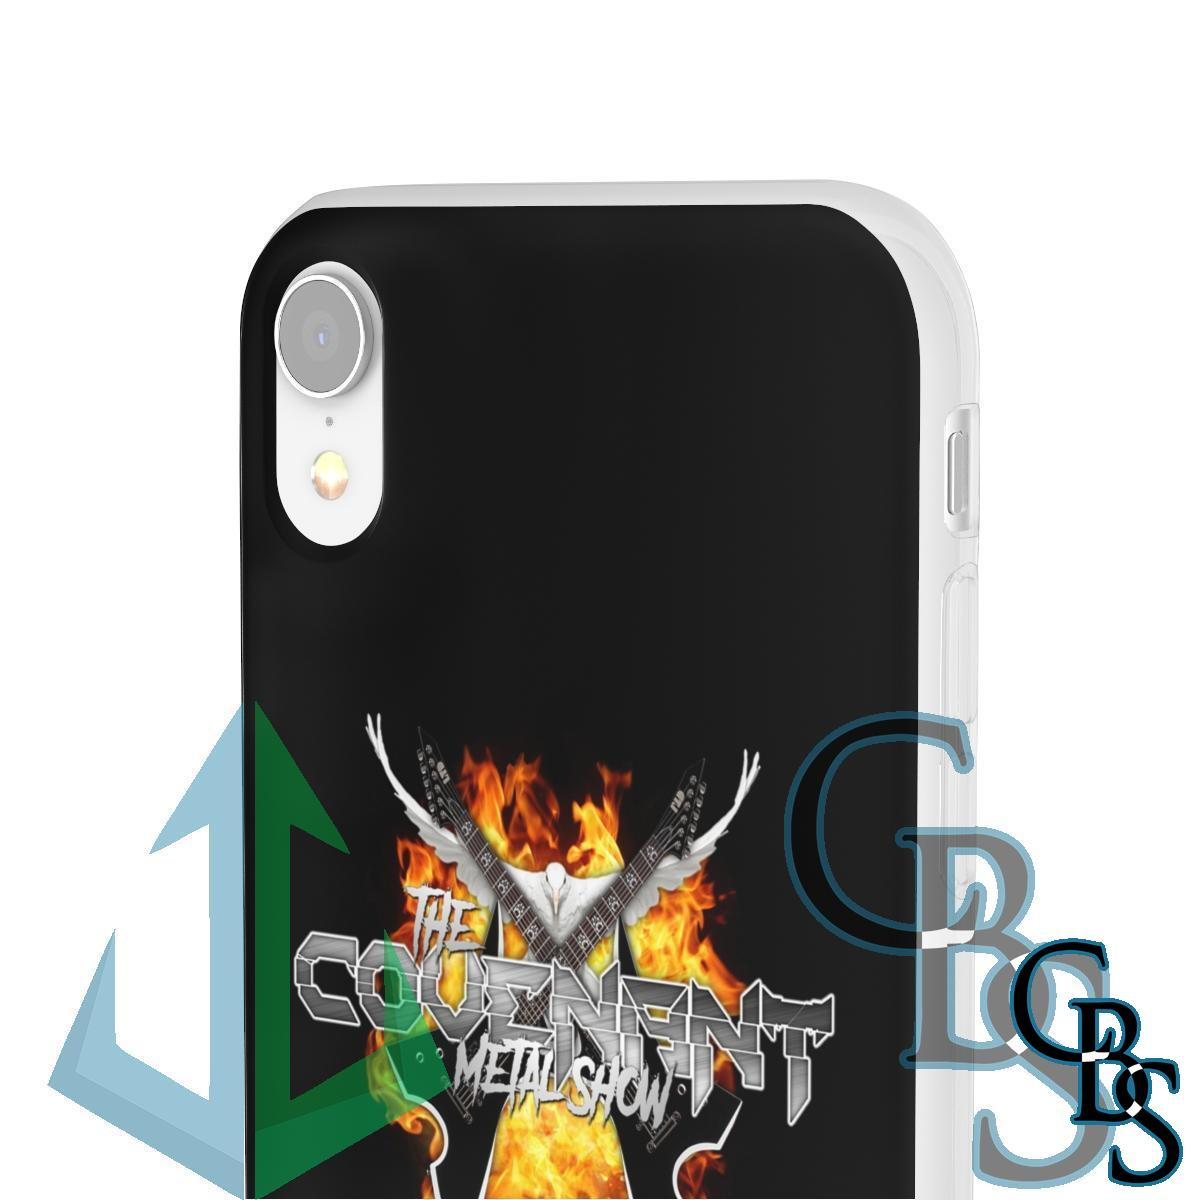 The Covenant Metal Show Clear Edge TPU Phone Cases